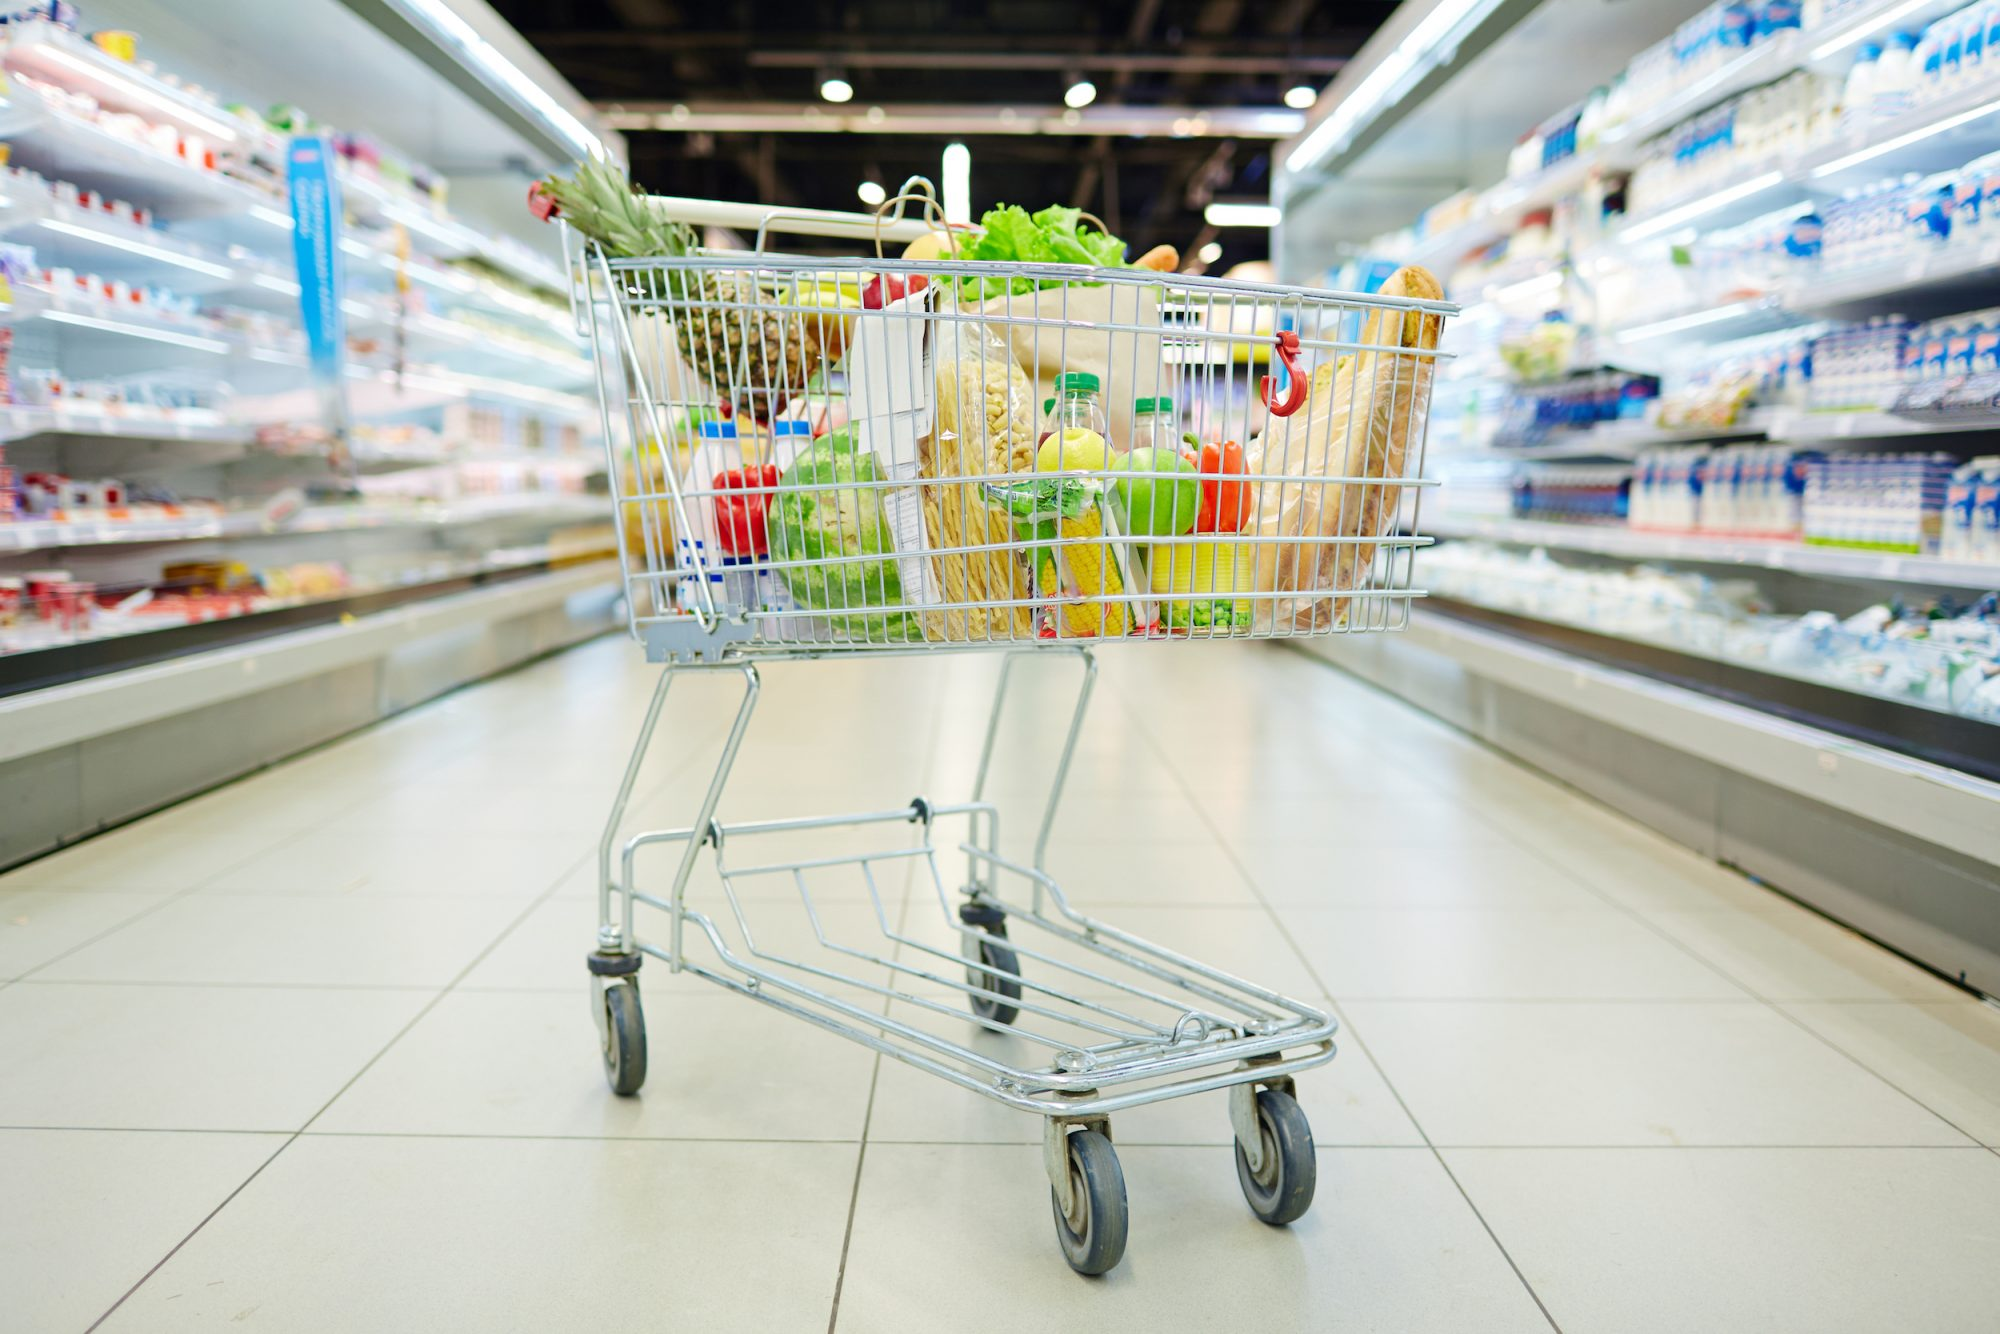 Demand for support and control to prevent increase in prices during Ramadan